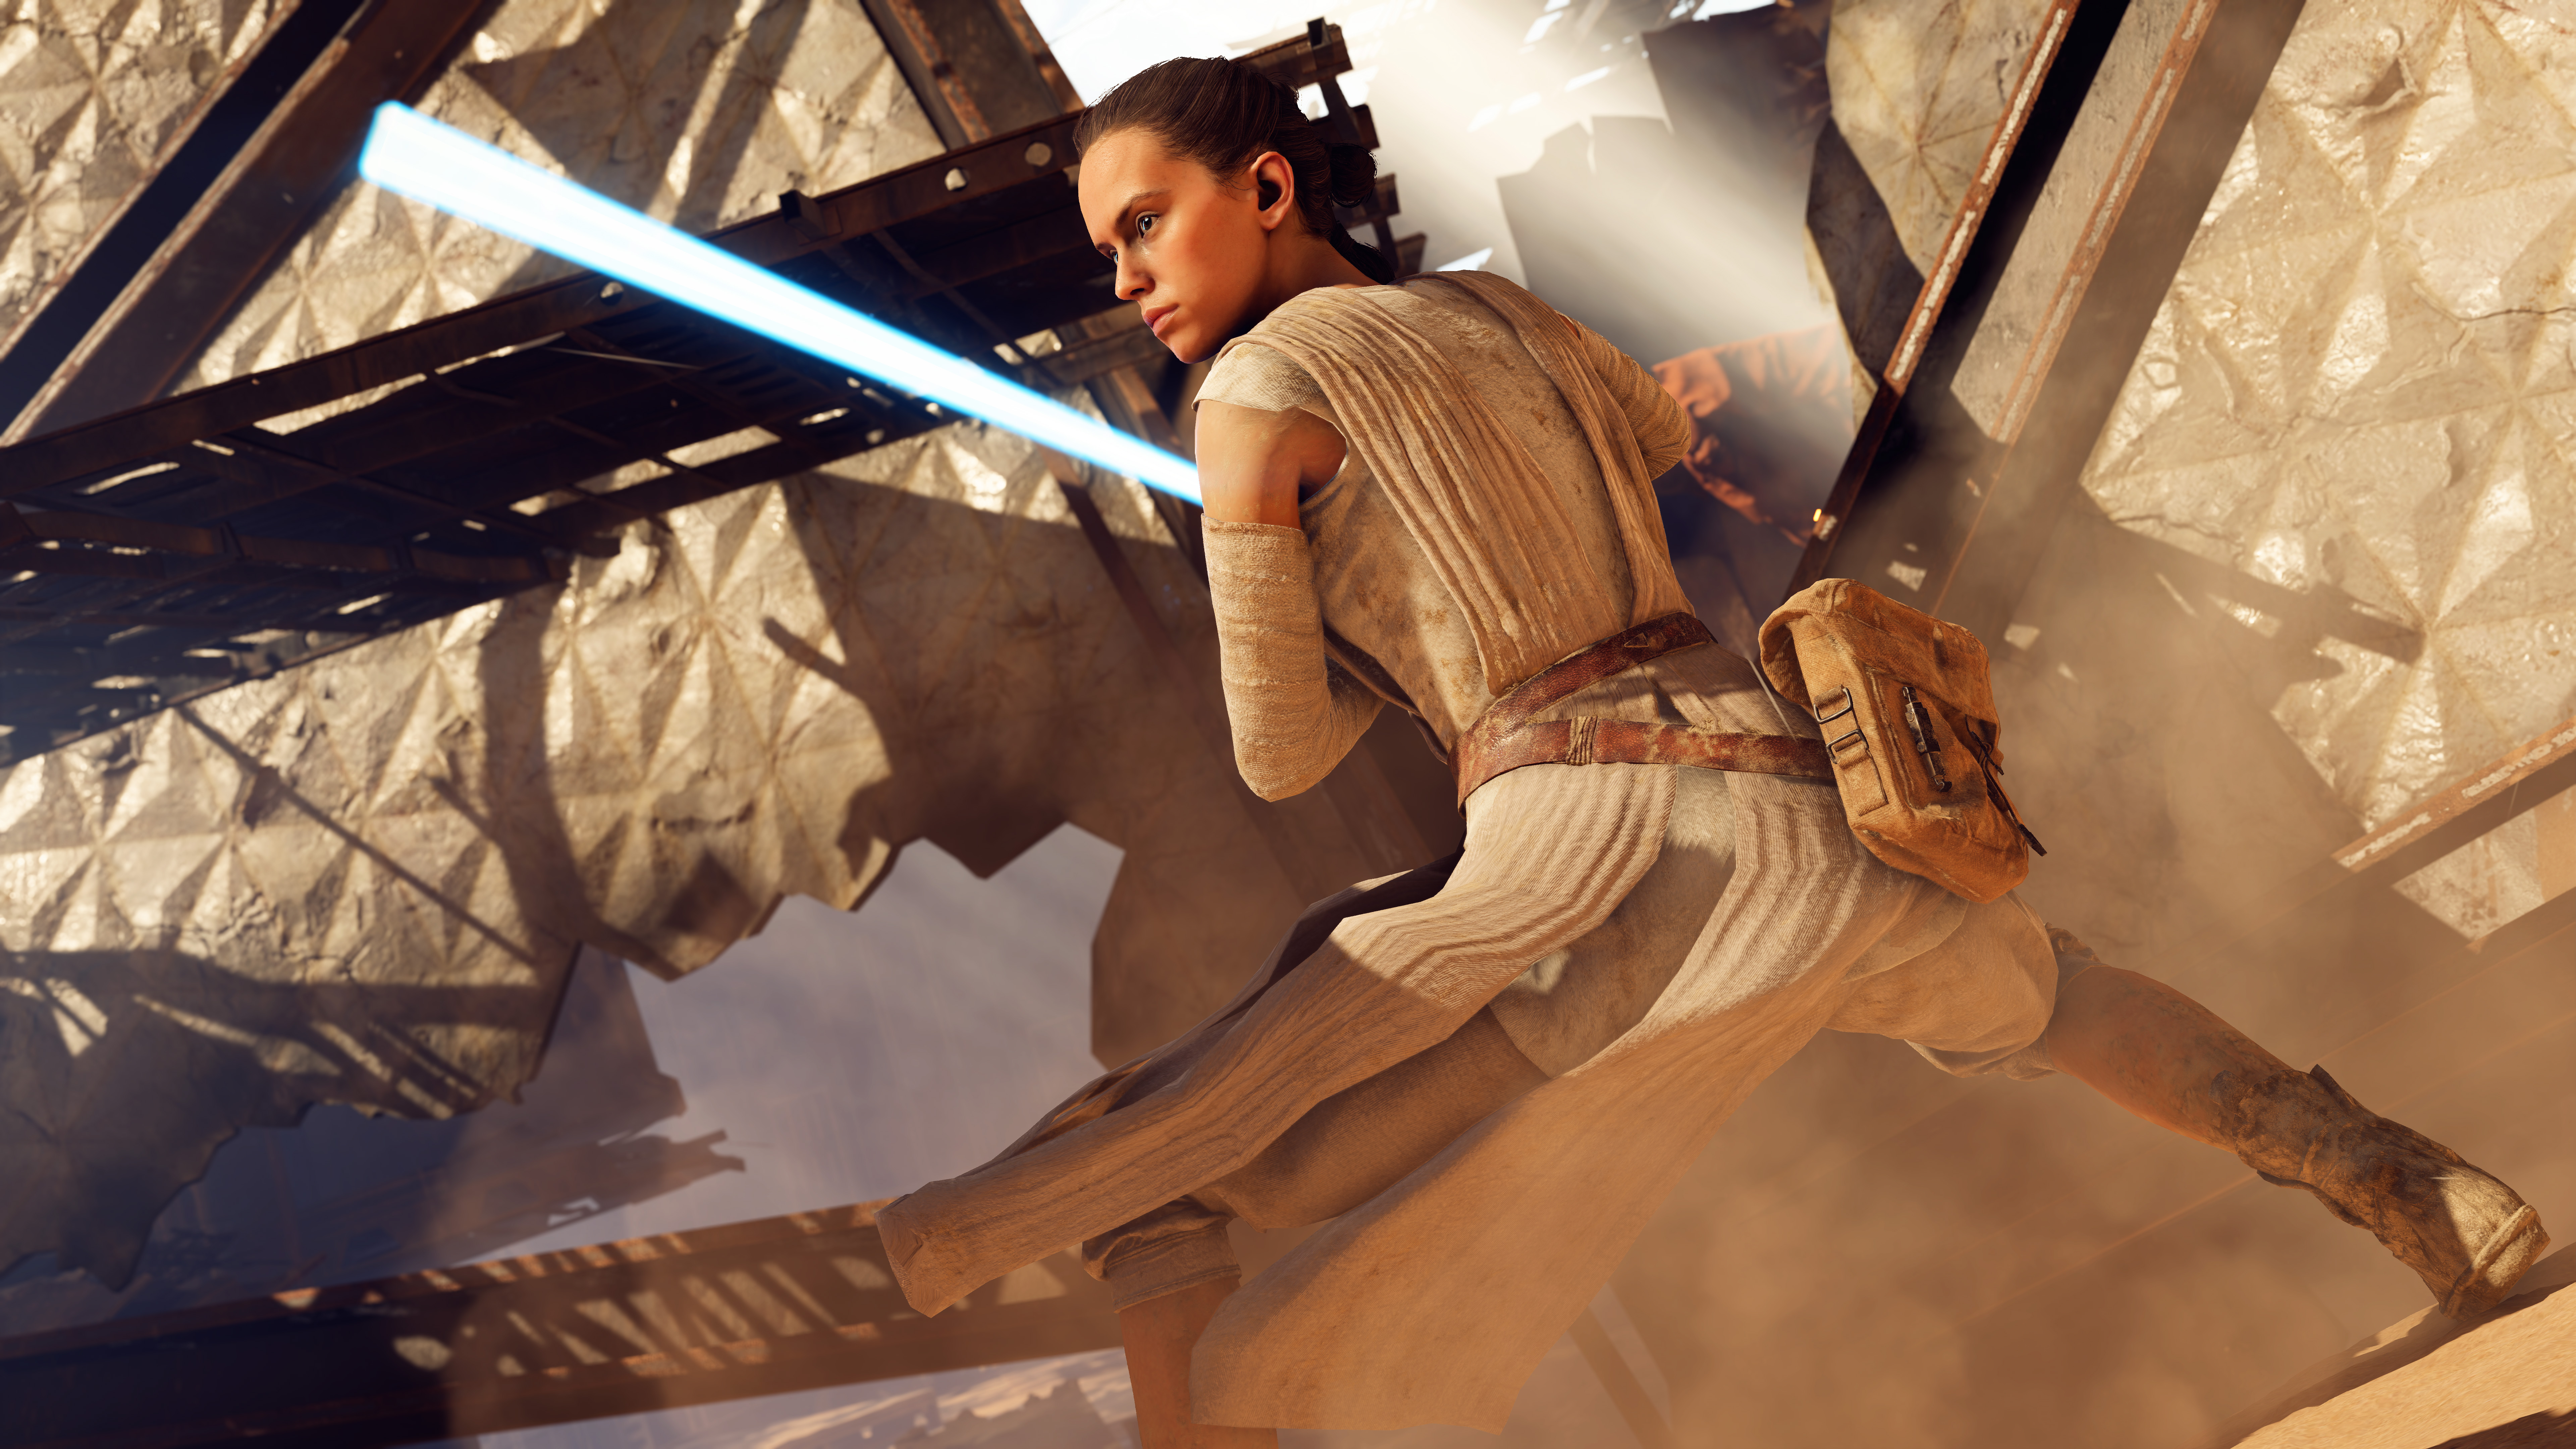 Rey Star Wars Battlefront 2 8k Hd Games 4k Wallpapers Images Backgrounds Photos And Pictures